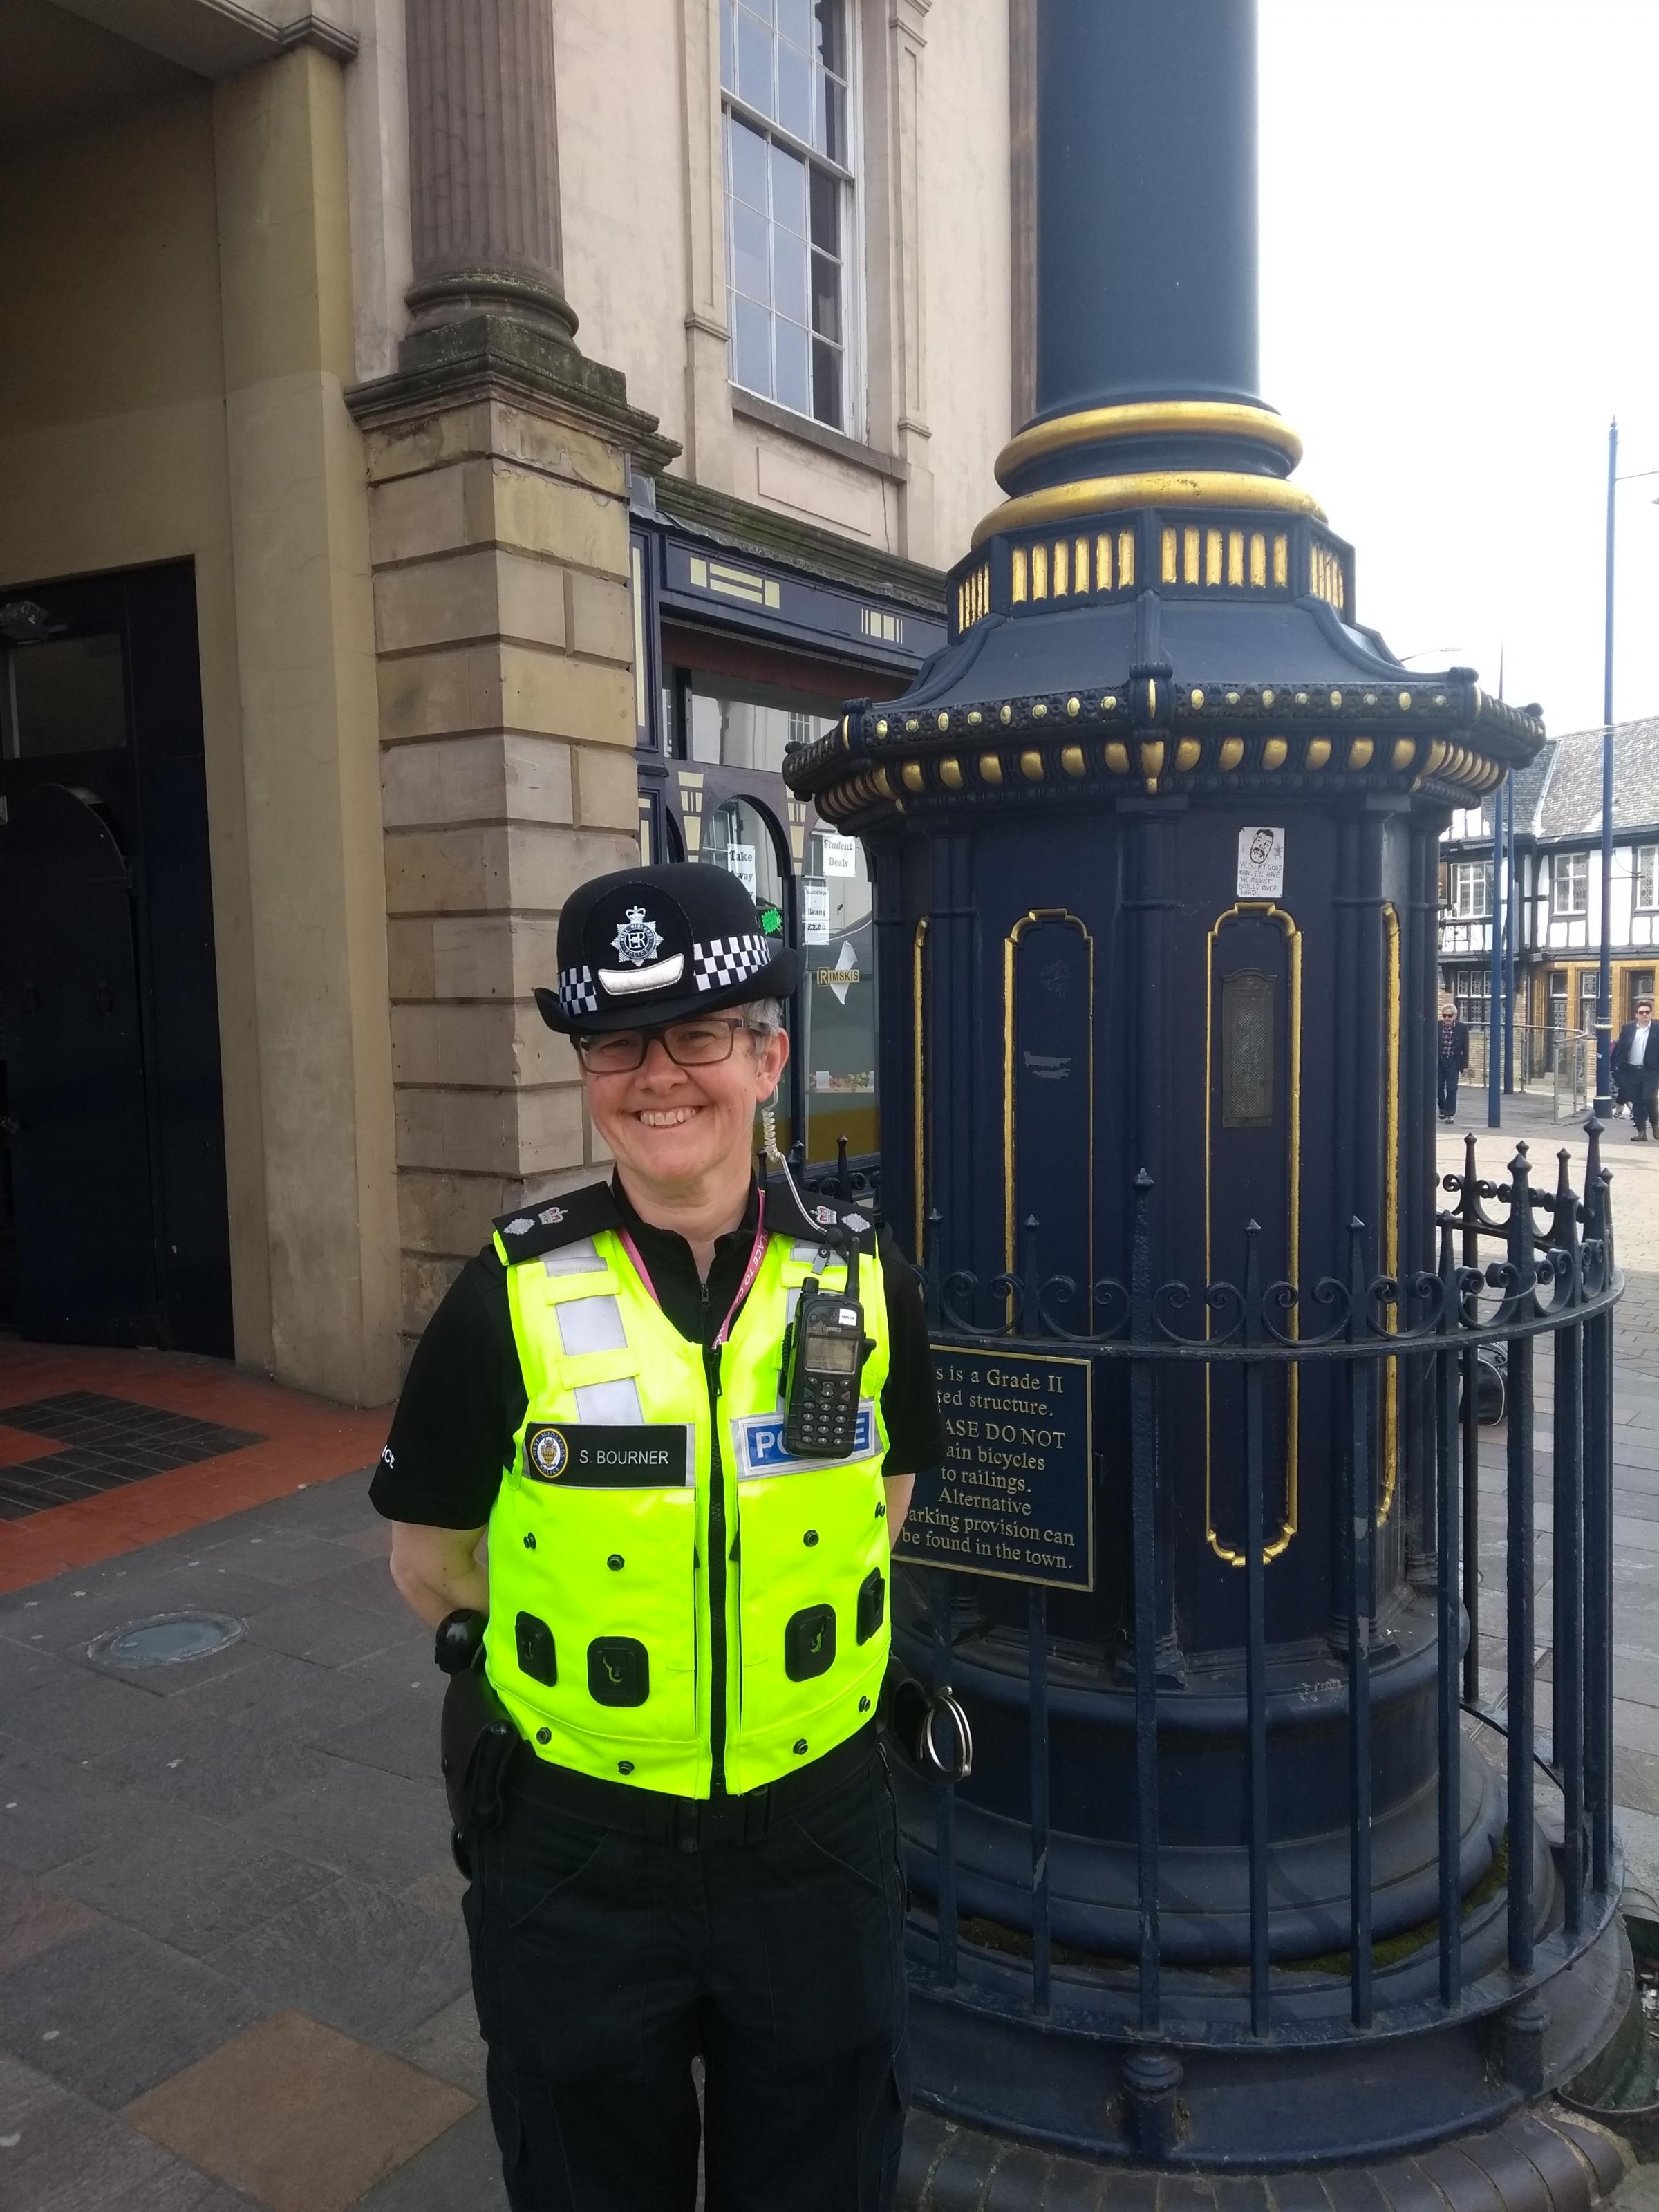 Chief Superintendent Sall Bourner pays a visit to Stourbridge town centre.